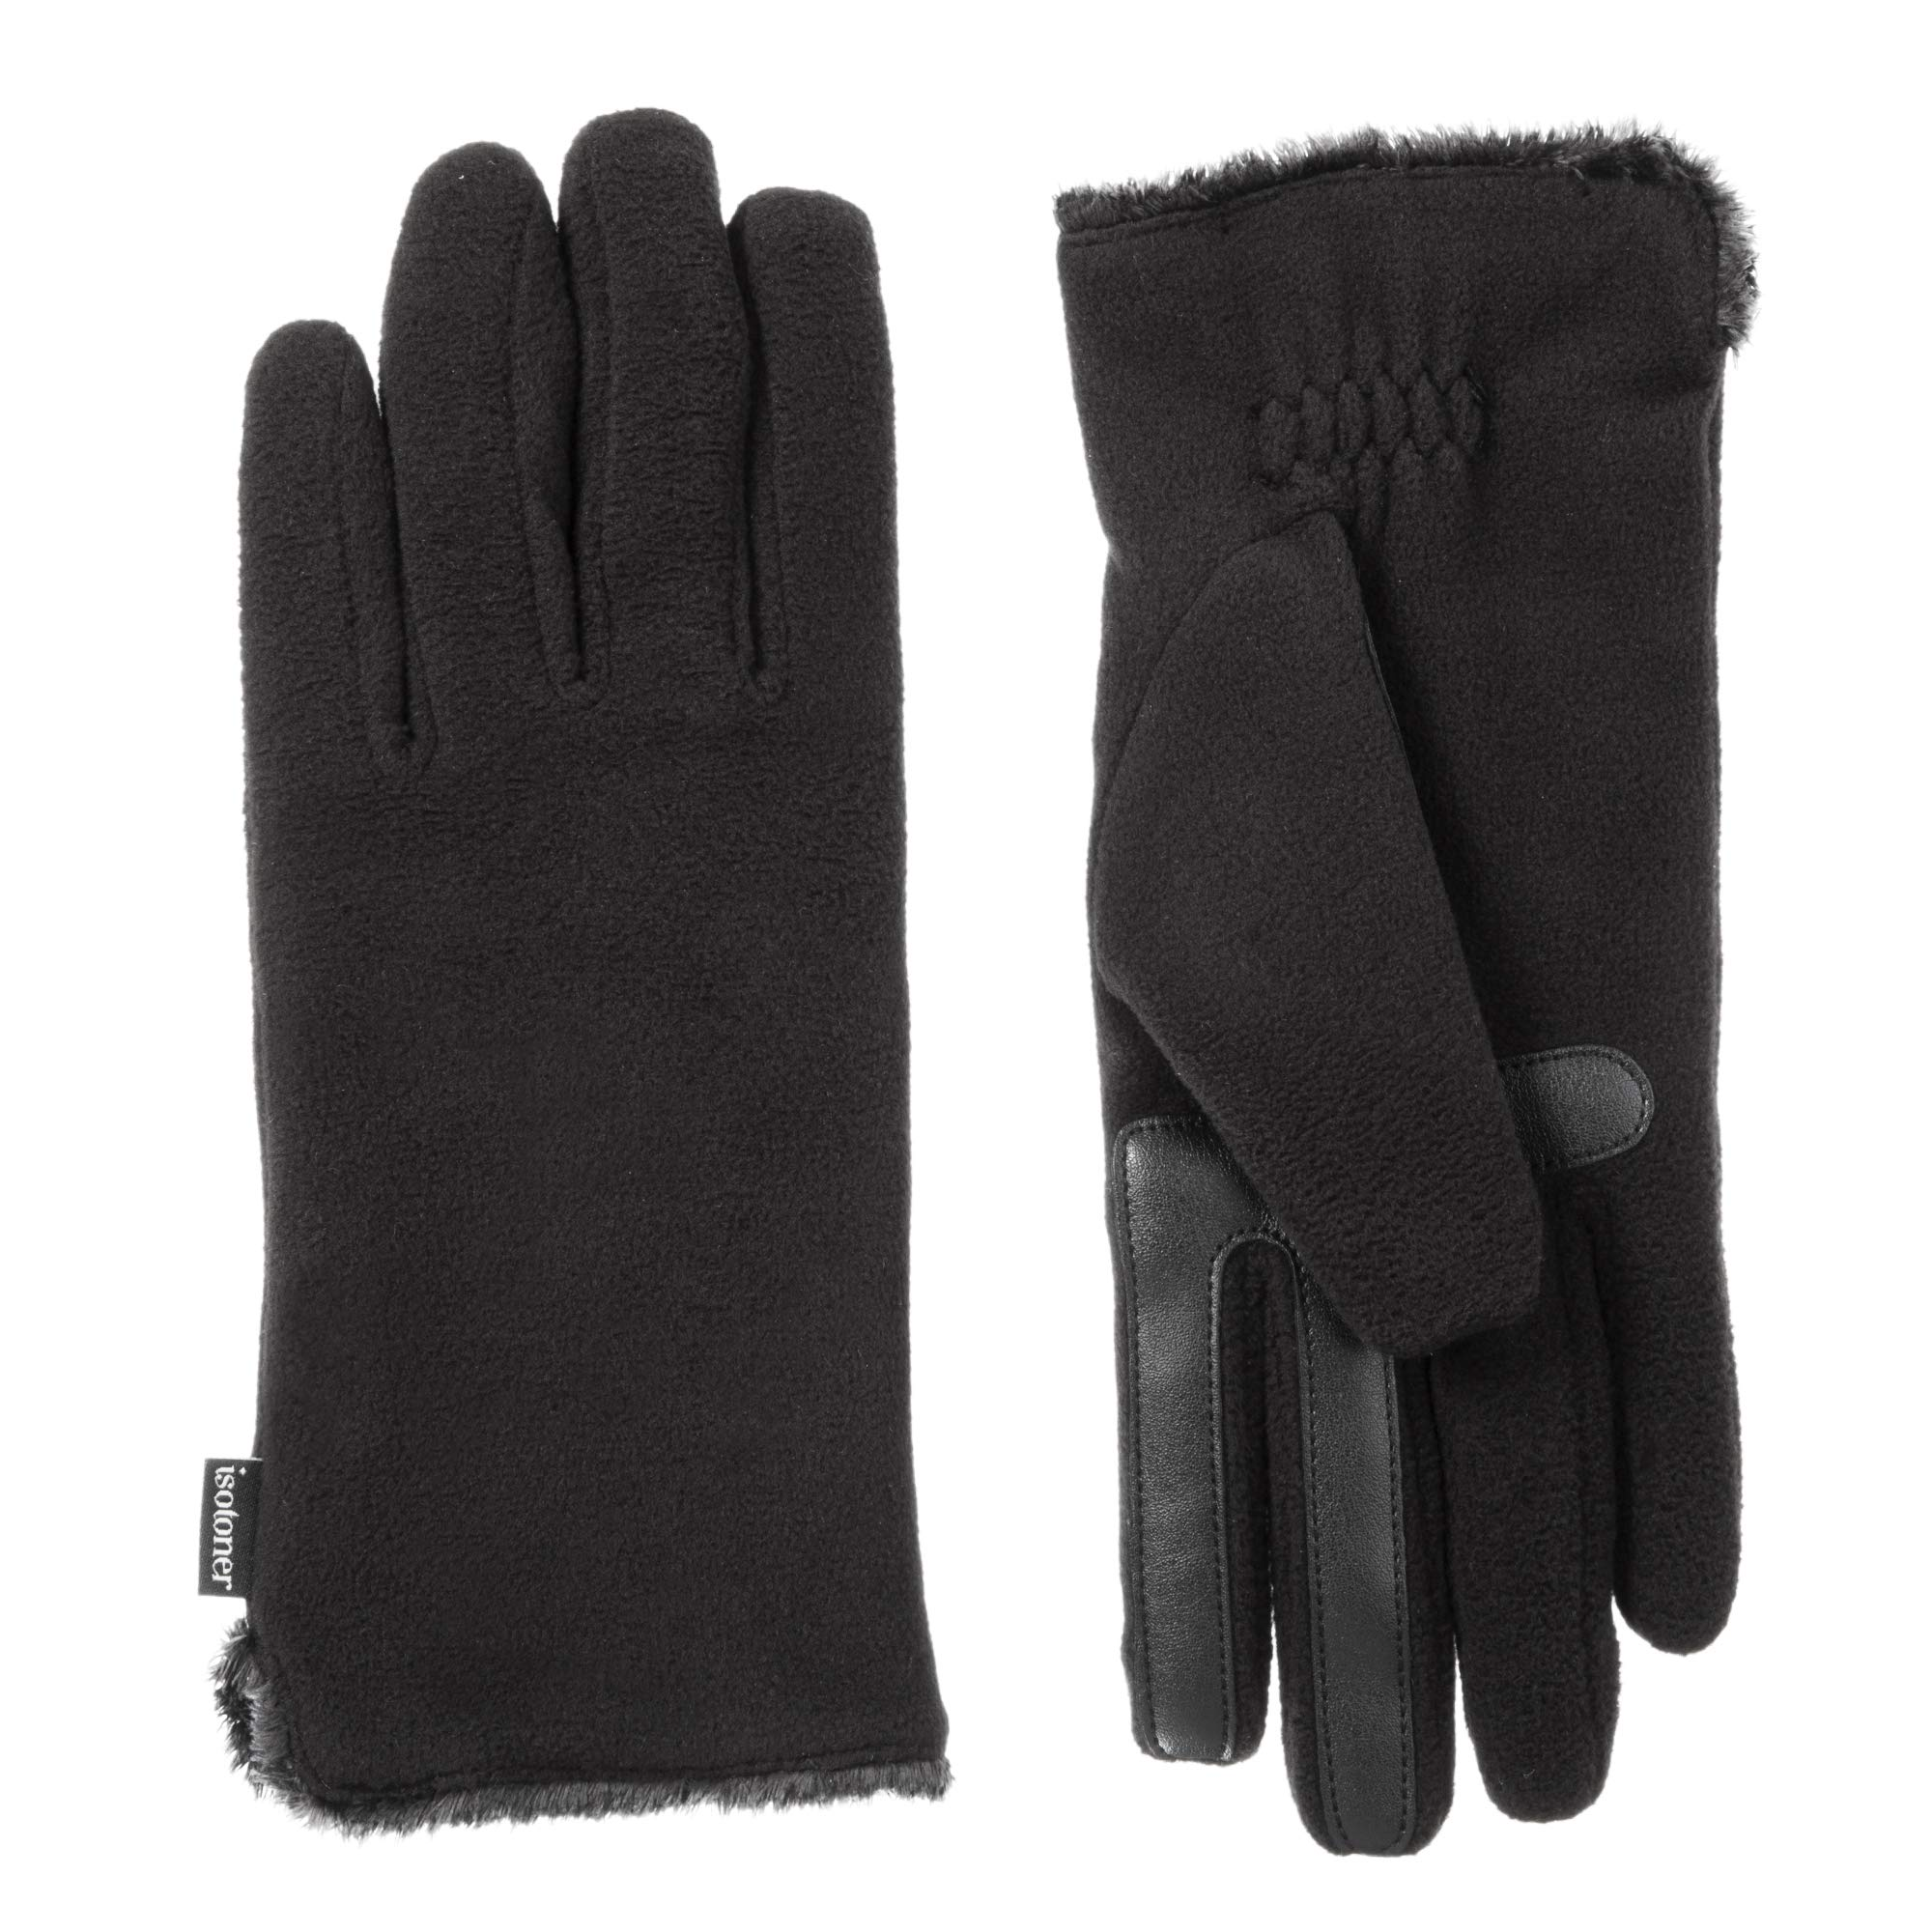 ISOTONER Women's Stretch Fleece Touchscreen Texting Cold Weather Gloves with Warm, Soft Lining by ISOTONER